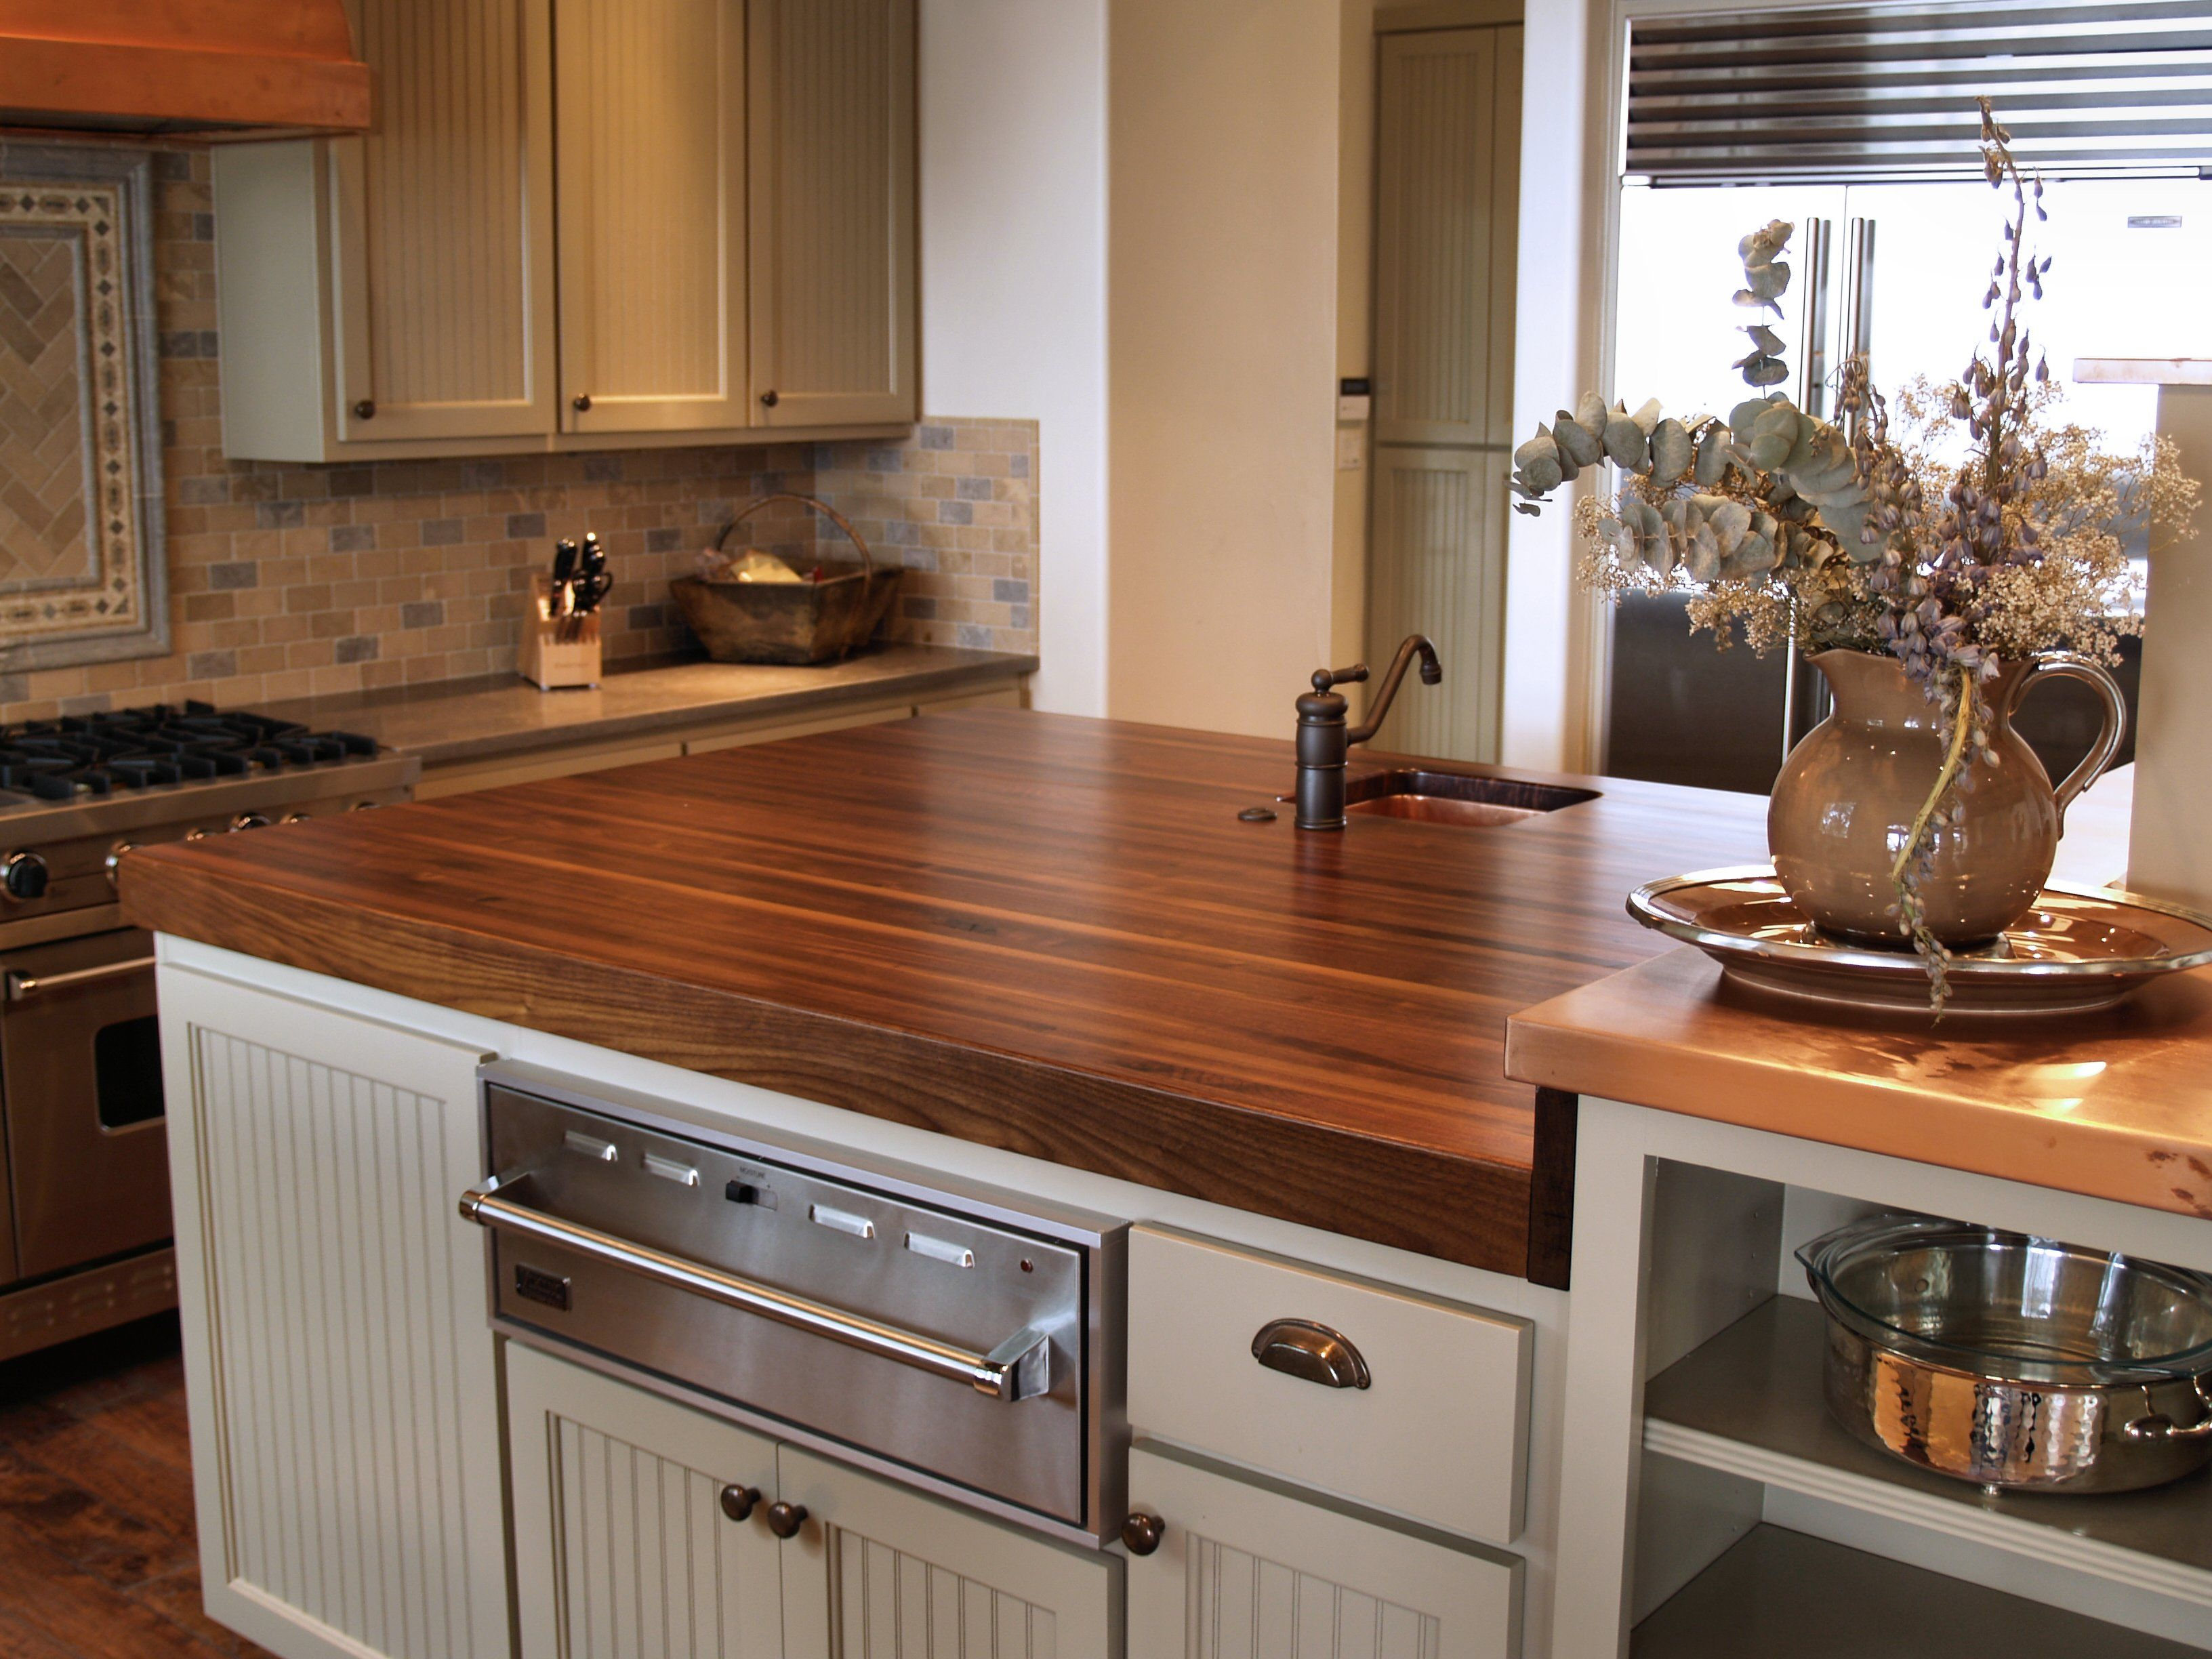 Kitchen Island Countertops : Walnut wood countertop photo gallery by devos custom